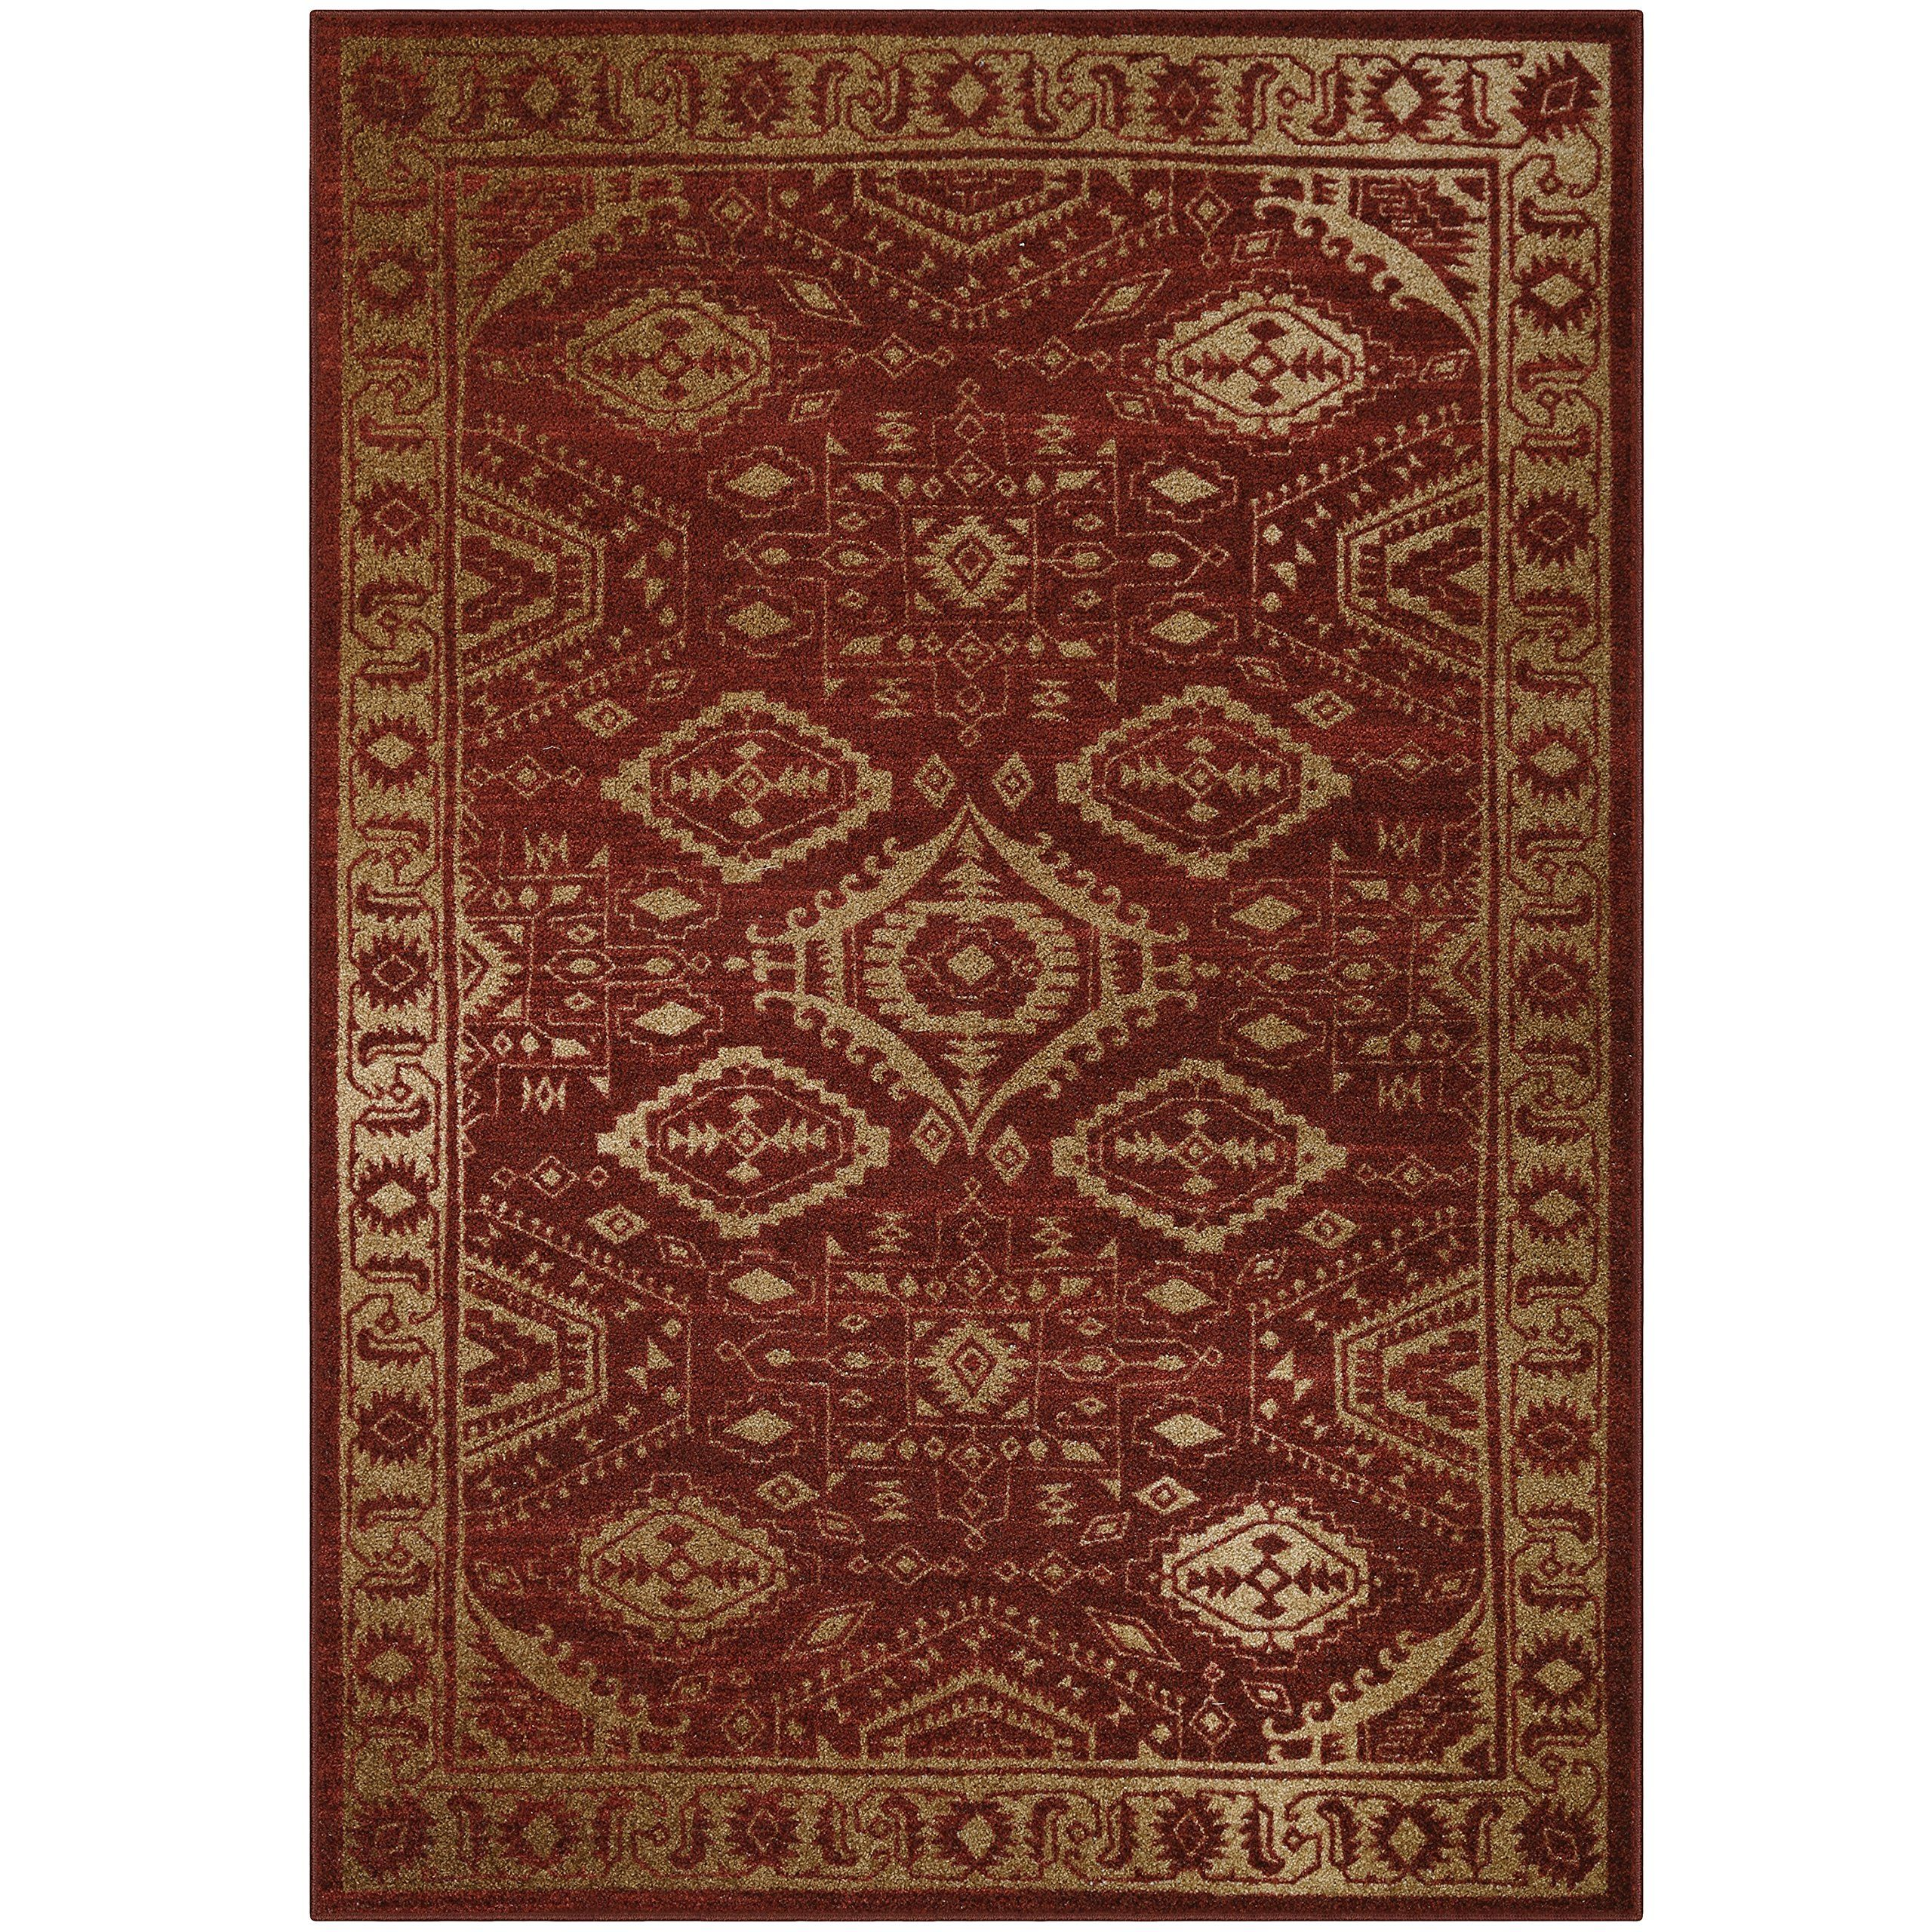 Maples Rugs Georgina Traditional Area Rugs For Living Room And Bedroom Made In Usa You Can Find Out More Details At The Li In 2020 Area Rugs Maples Rugs Tufted Rug #small #area #rug #in #living #room